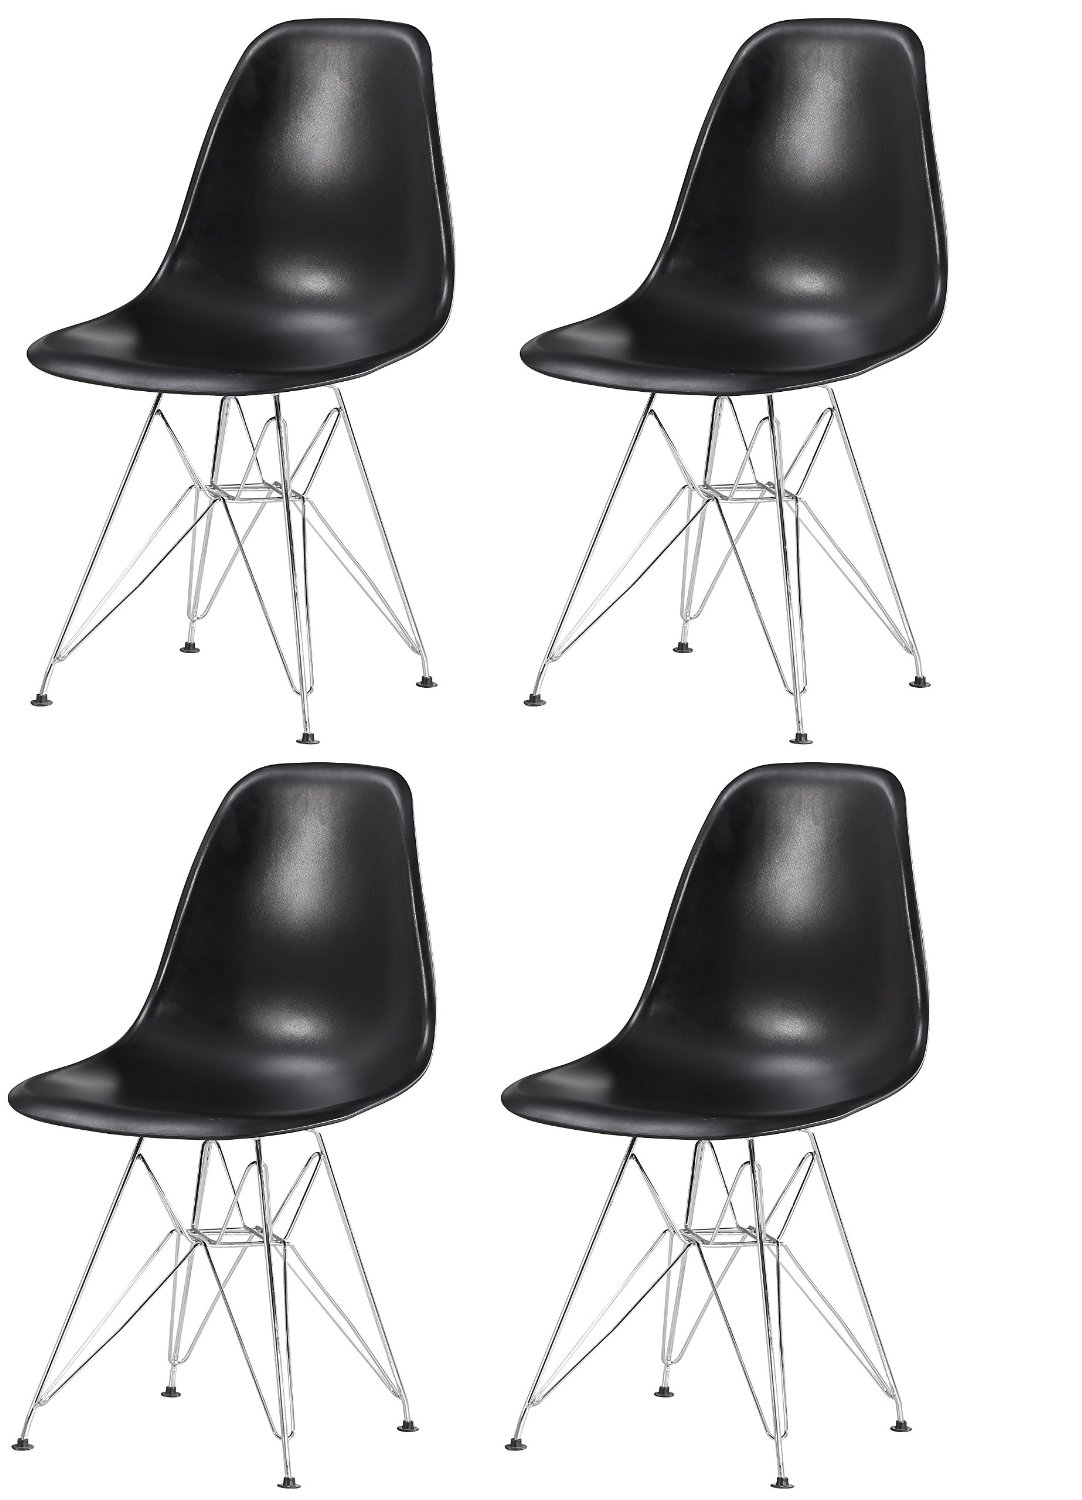 Eiffel Eames Style Natural Wood Dowell Legs Dining Room Side Chair - Black DSW Set of 4